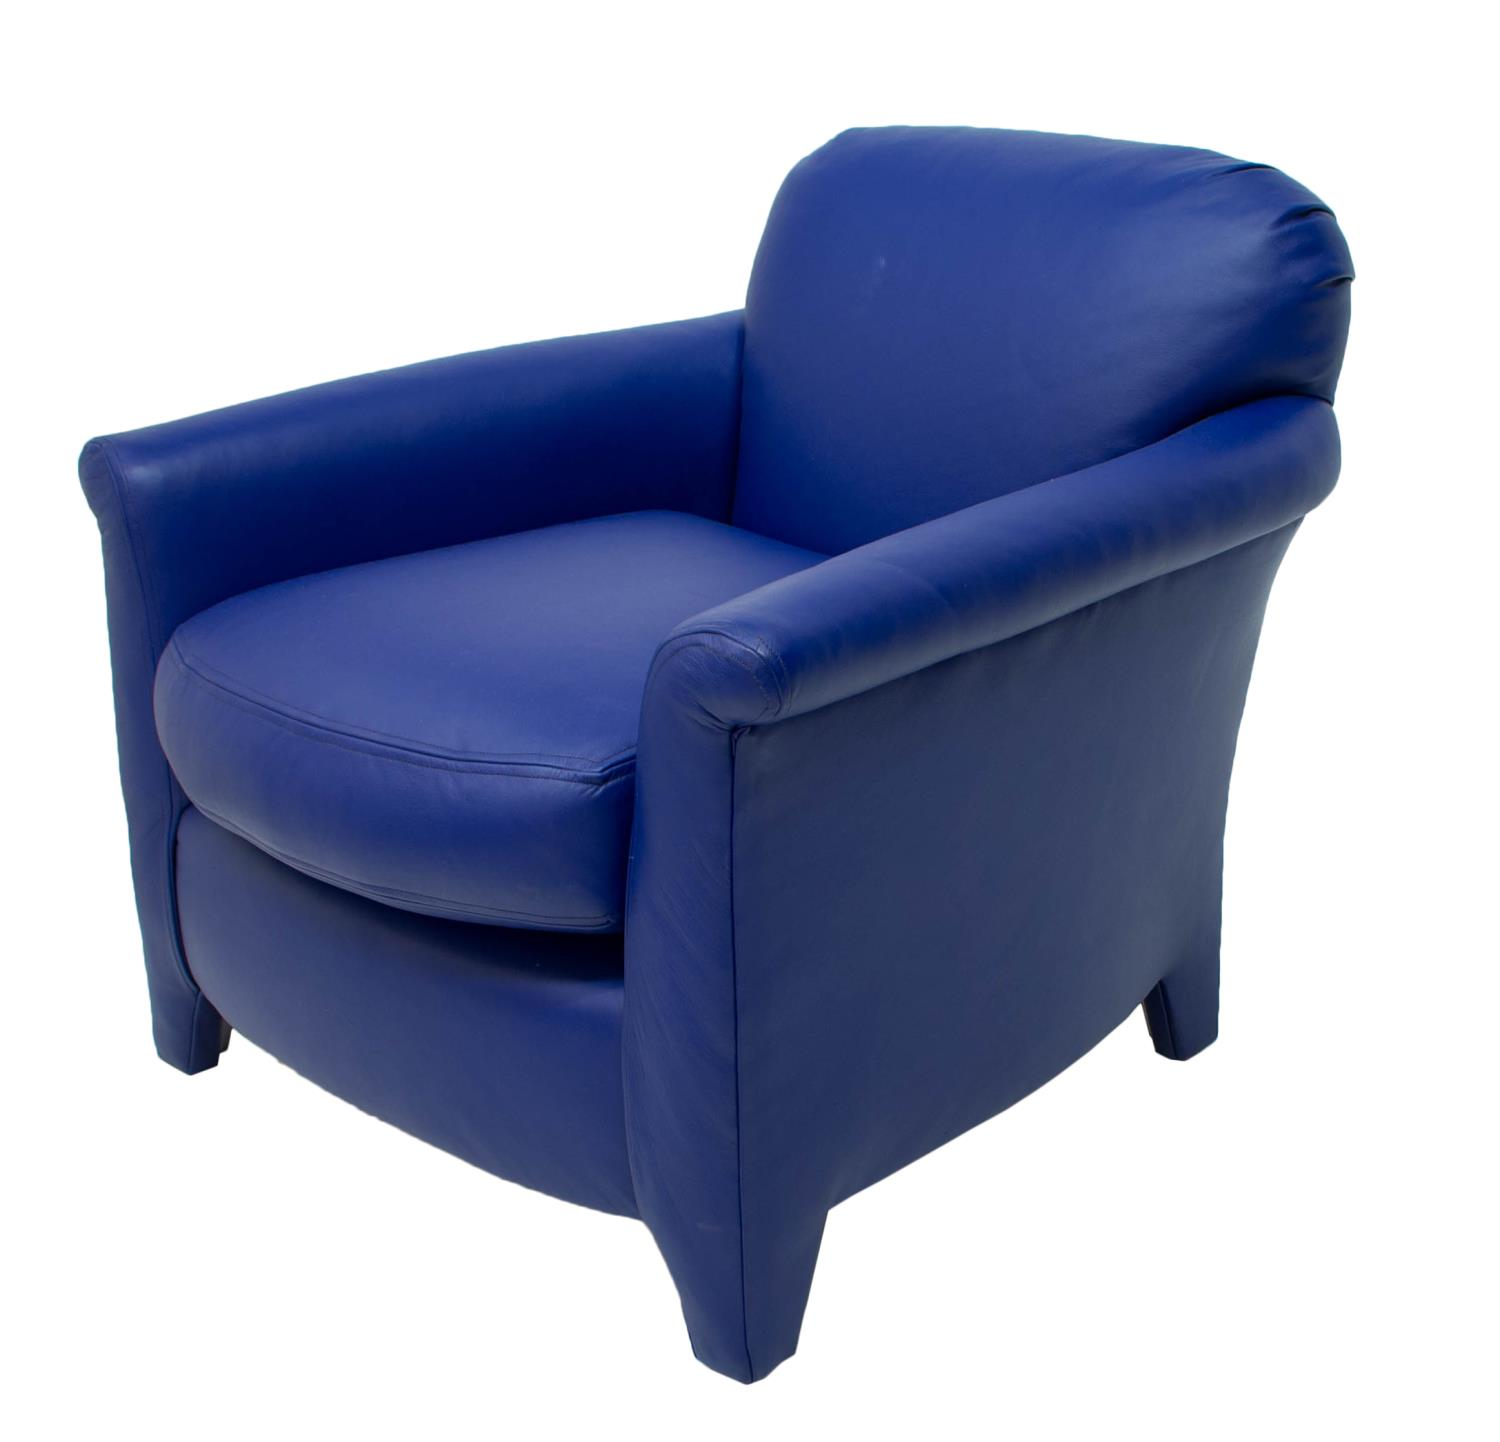 Blue Leather Club Chair Modern Blue Leather Upholstered Club Chair Exciting